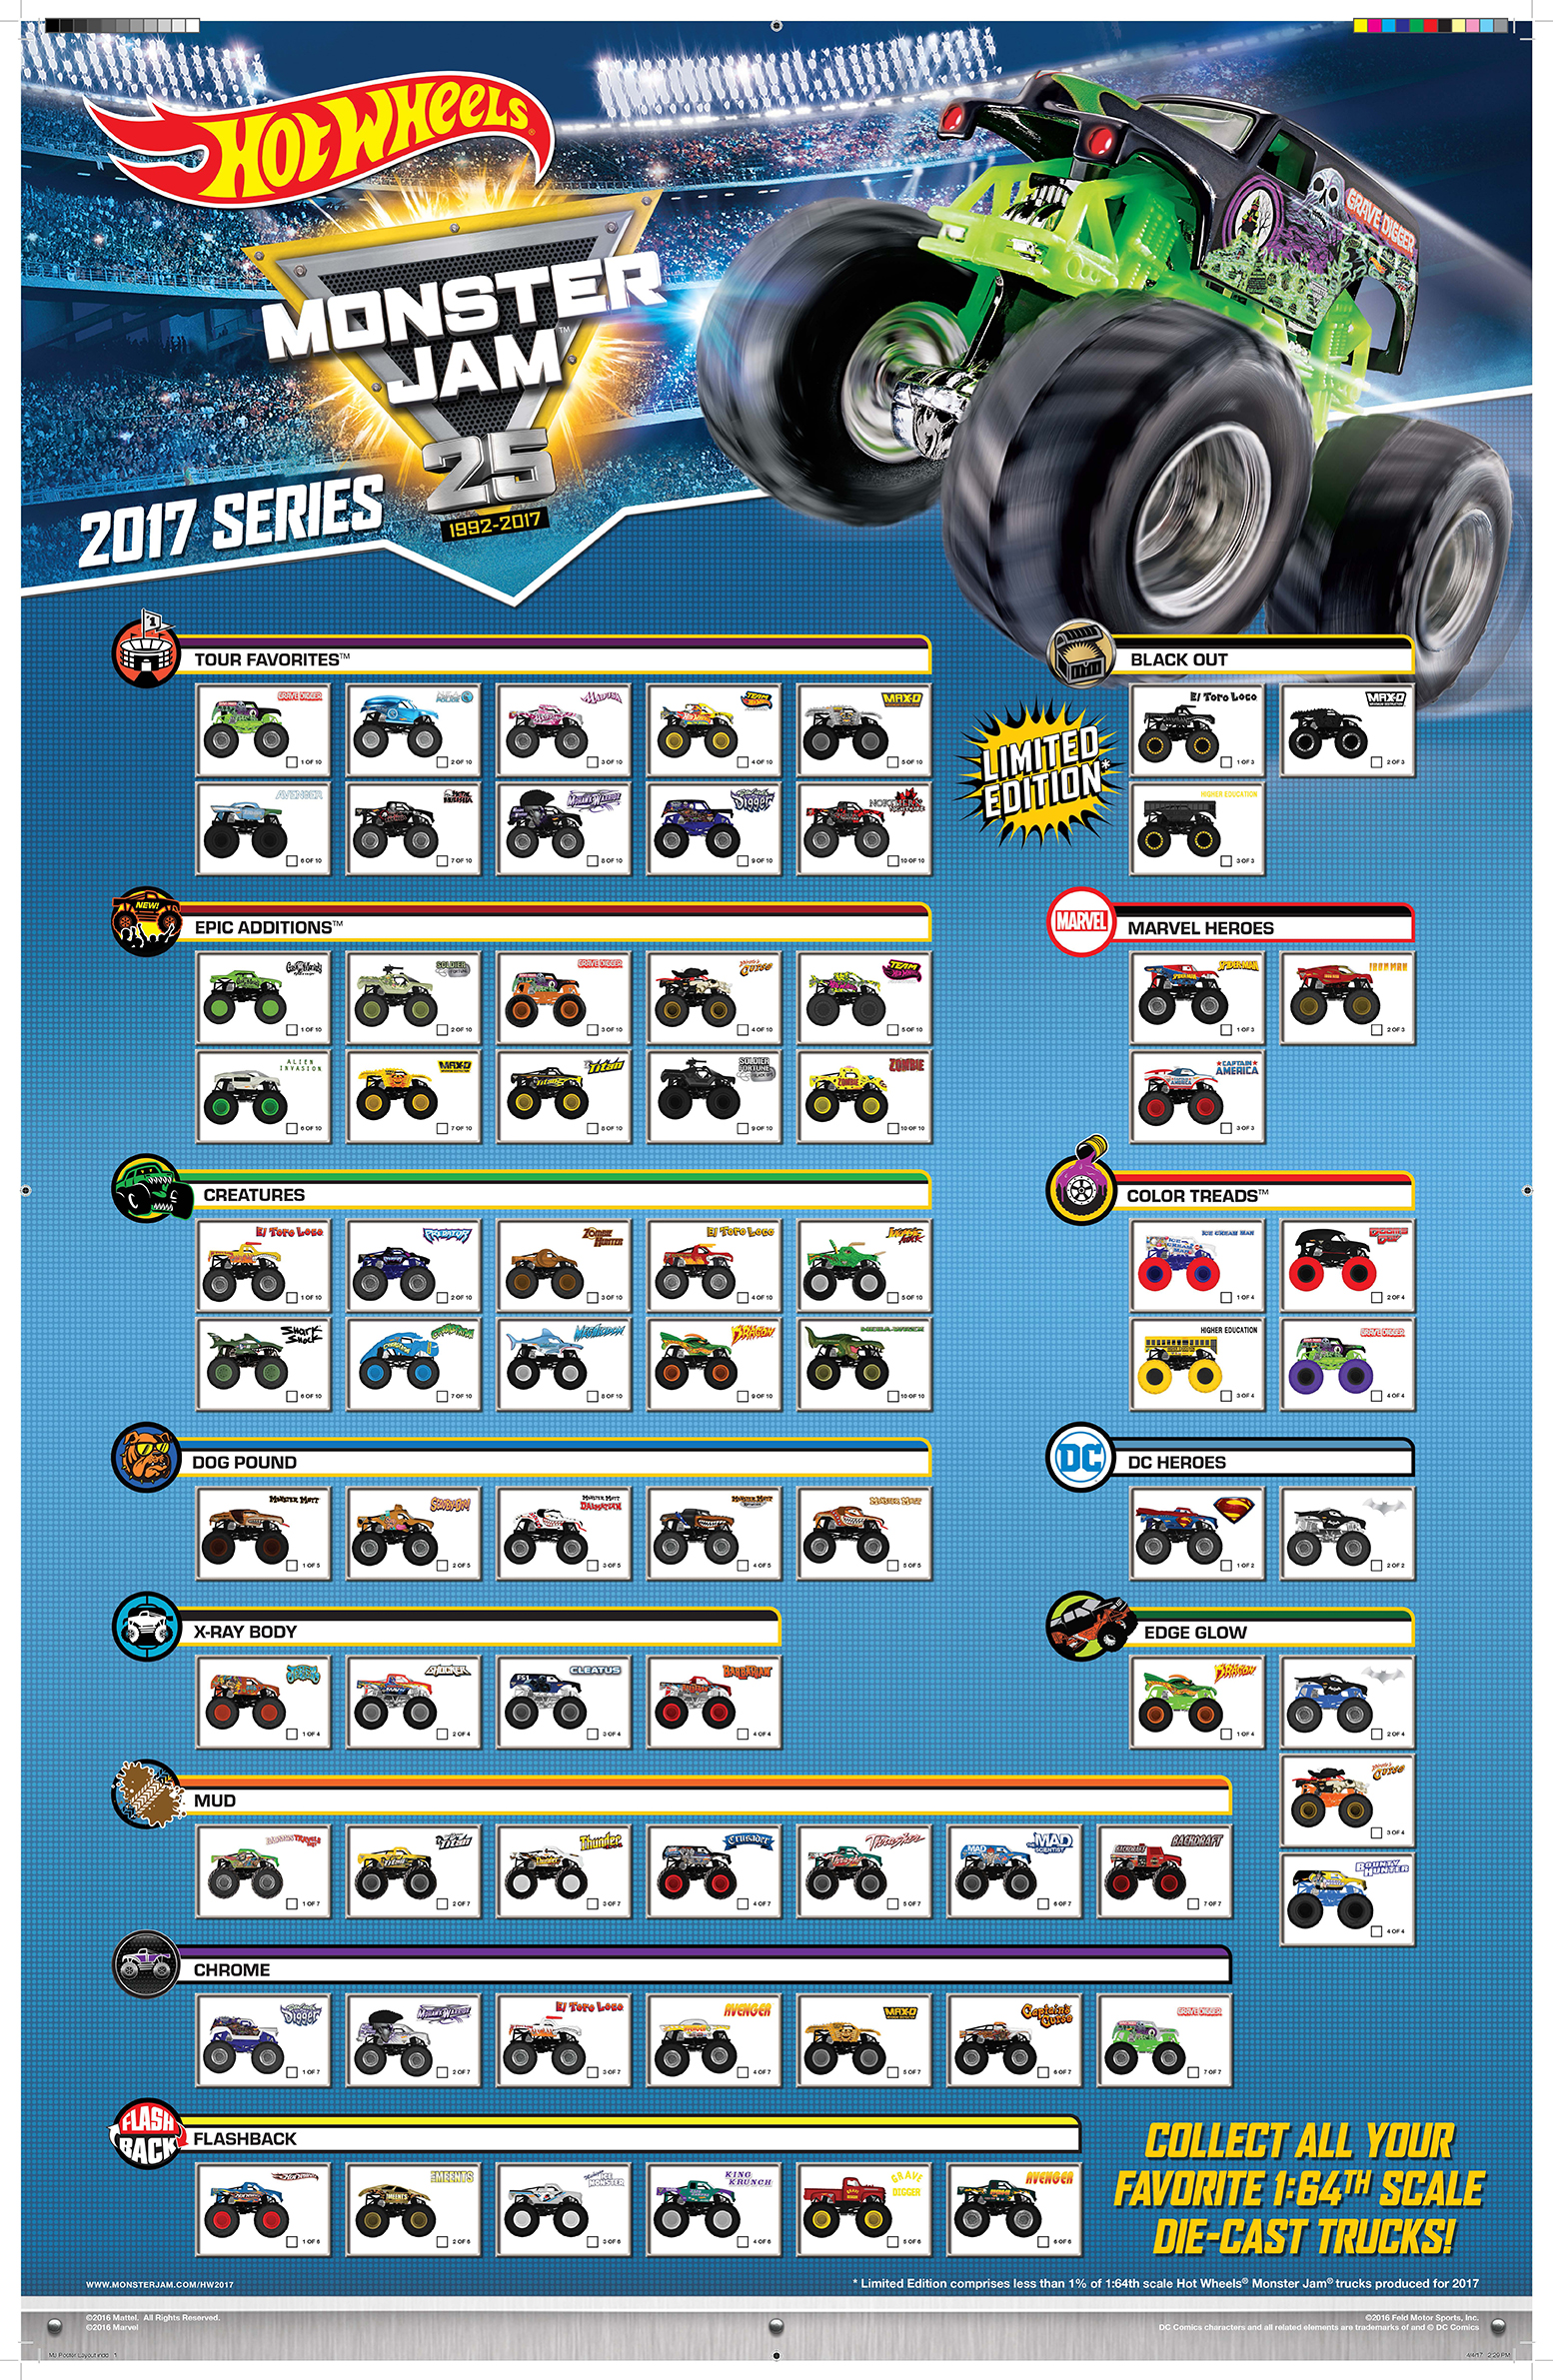 Hot Wheels 2017 Monster Jam Collectors Series | Monster Jam